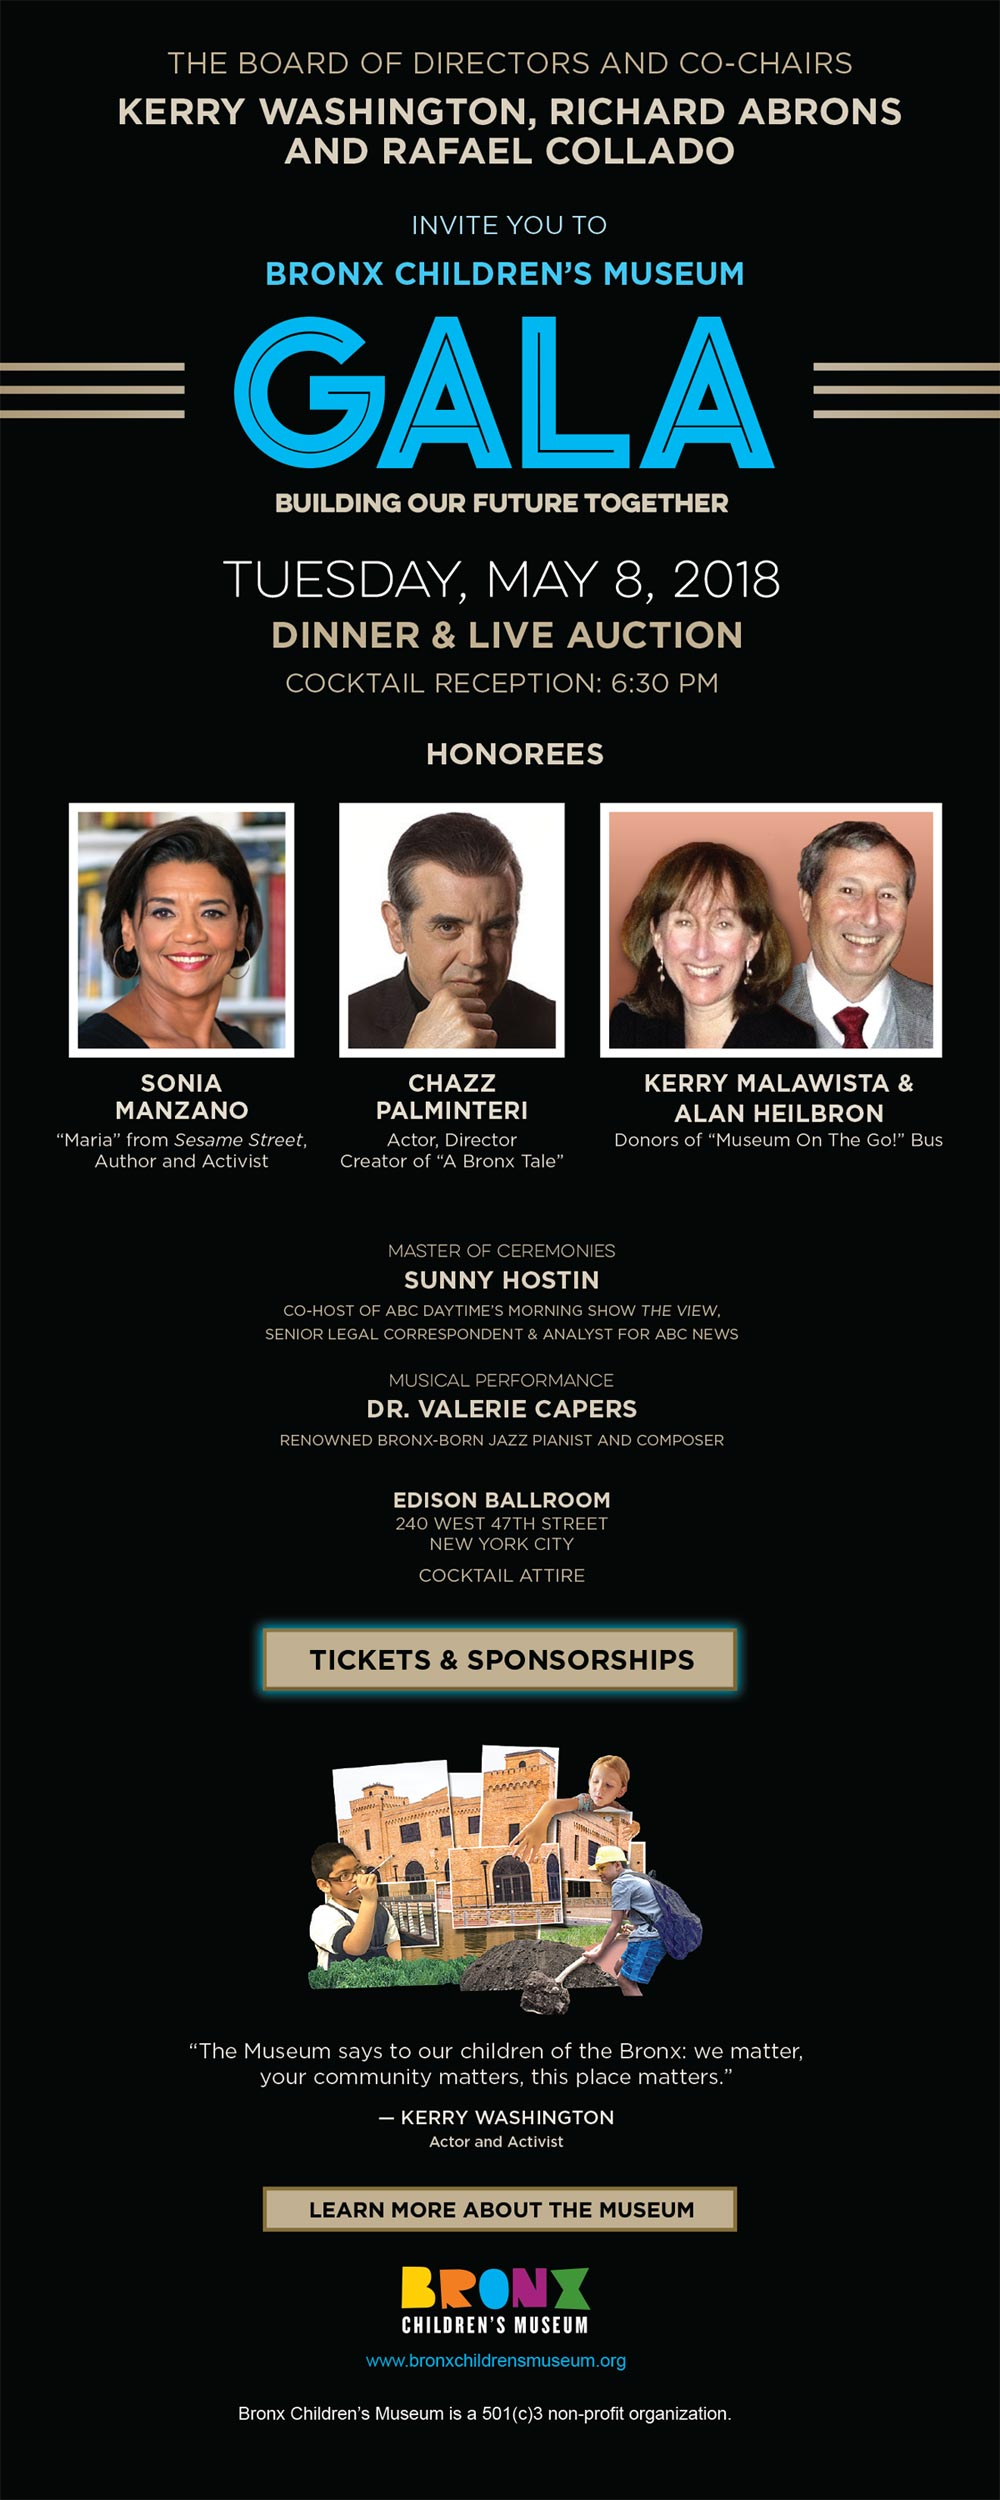 BxCM Gala18 Invite - Manzano honored by the Bronx Children's Museum